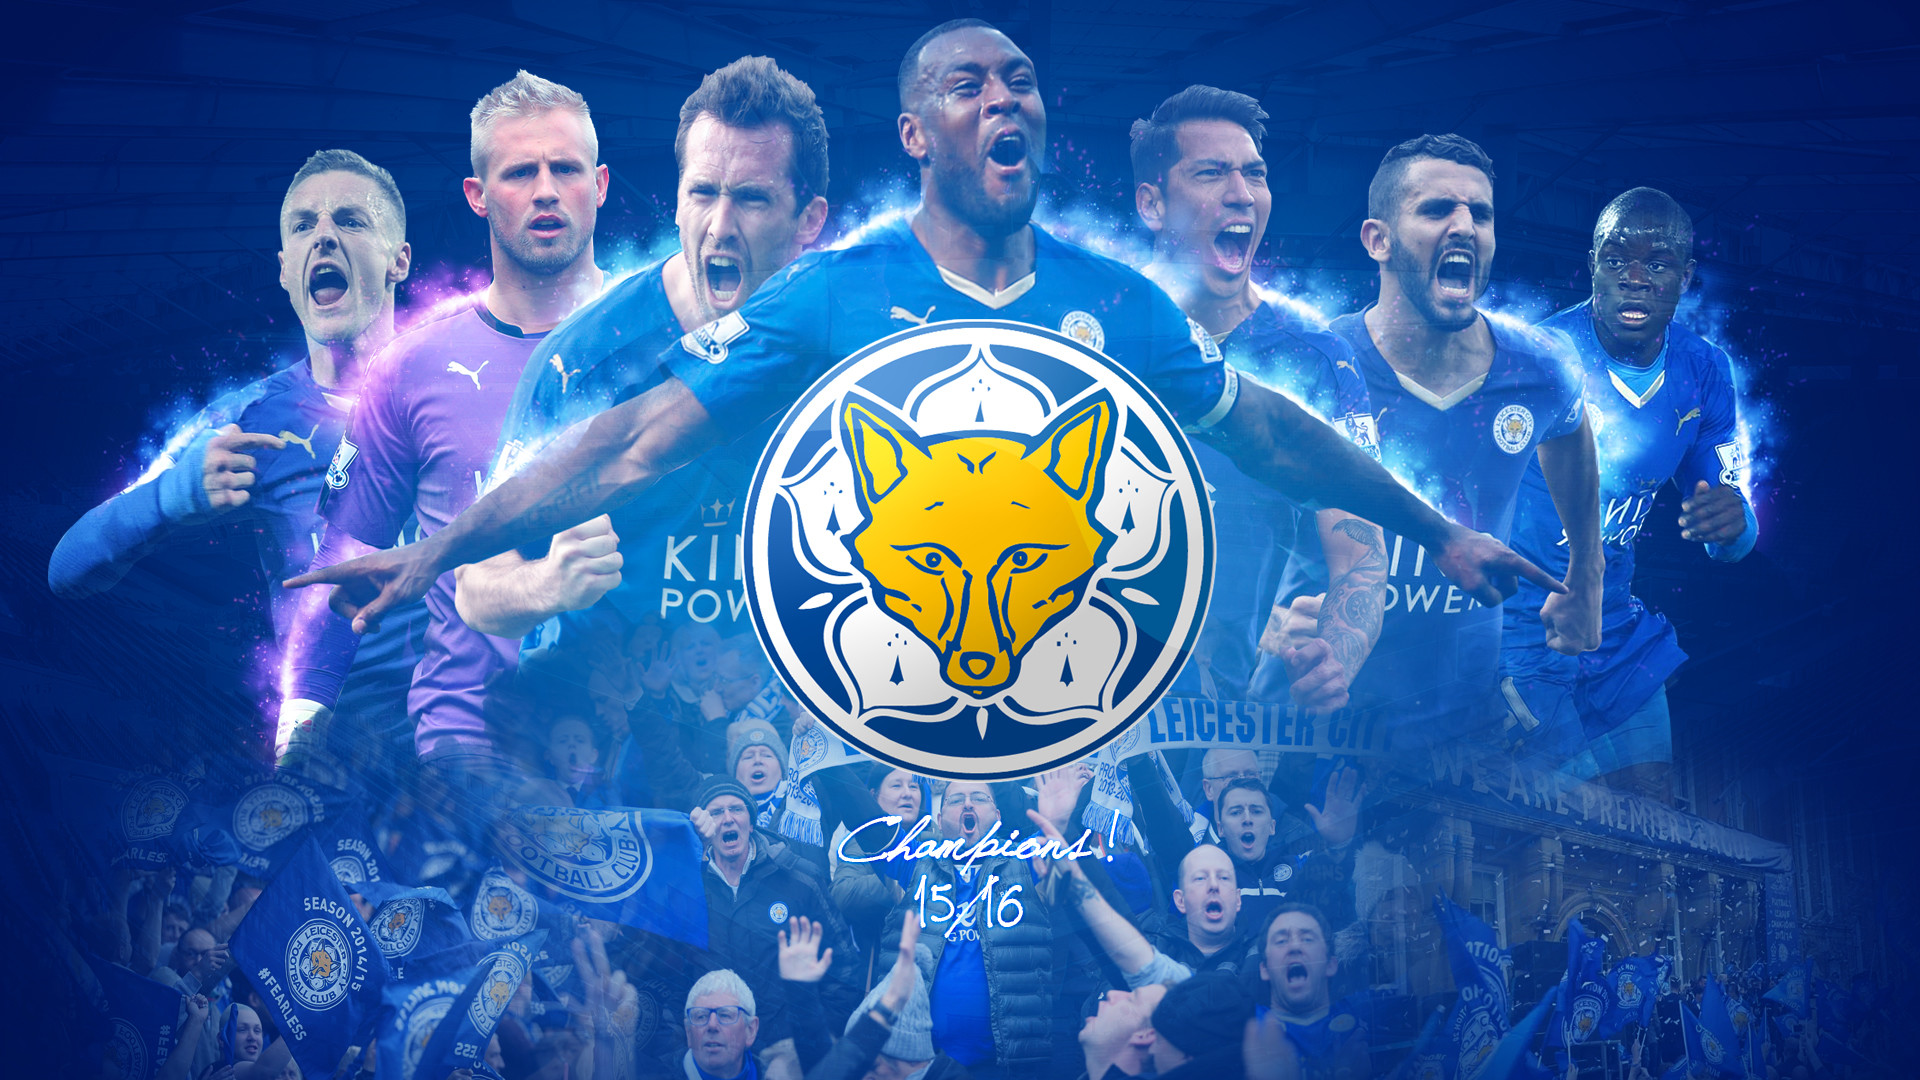 Manchester City Iphone Wallpaper Leicester City Fc Wallpapers 183 ①